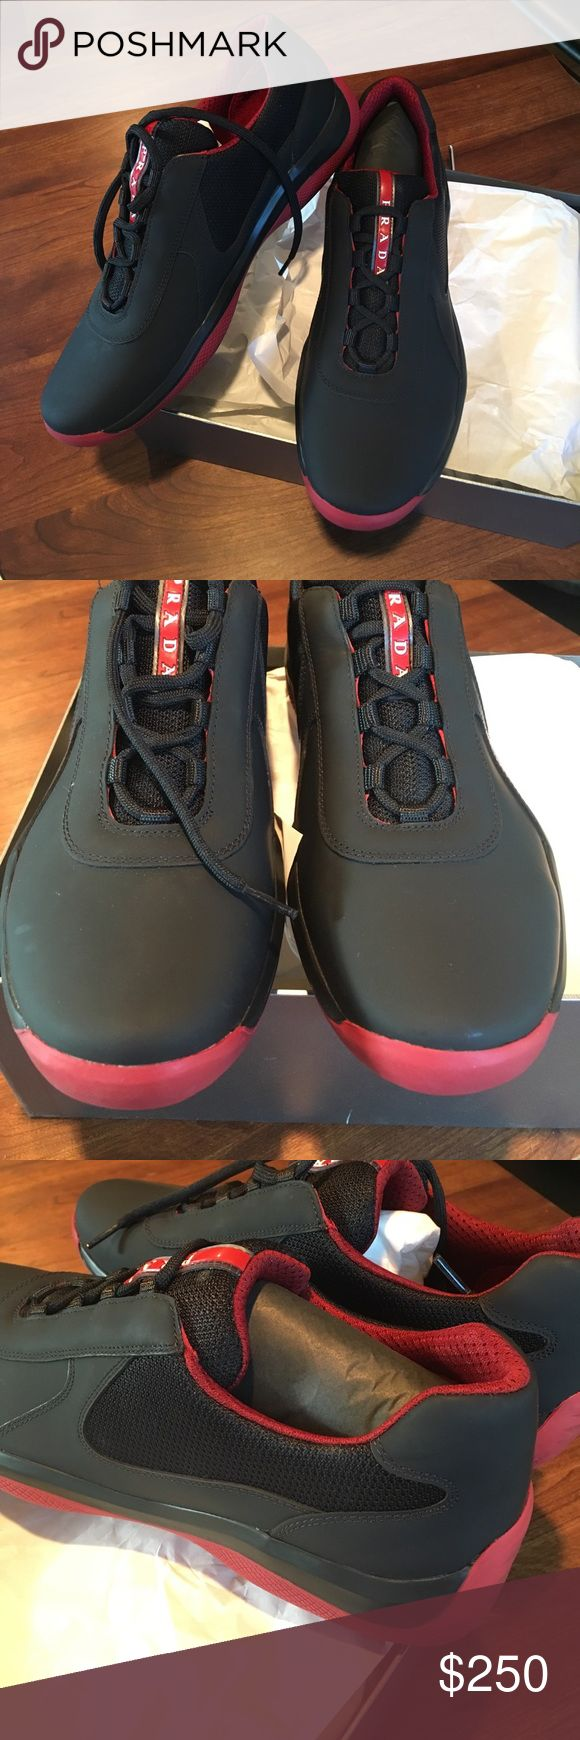 Prada Men's Punta Ala sneakers. NWT. Never worn. Prada Punta Ala trainers with dust bag. NWT. Never worn. Prada Shoes Sneakers